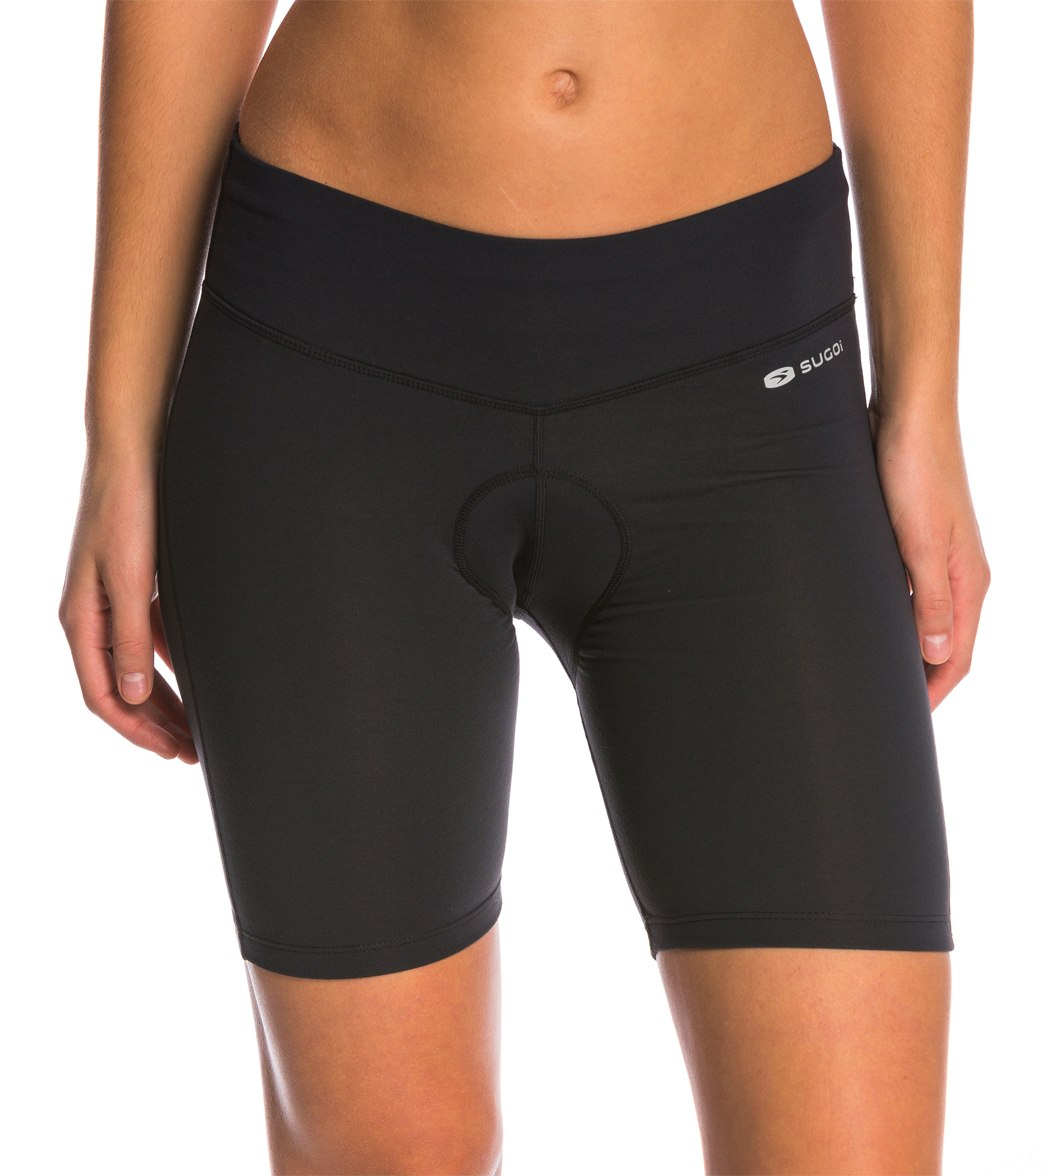 Sugoi Women's Lucky Cycling Shorts at SwimOutlet.com